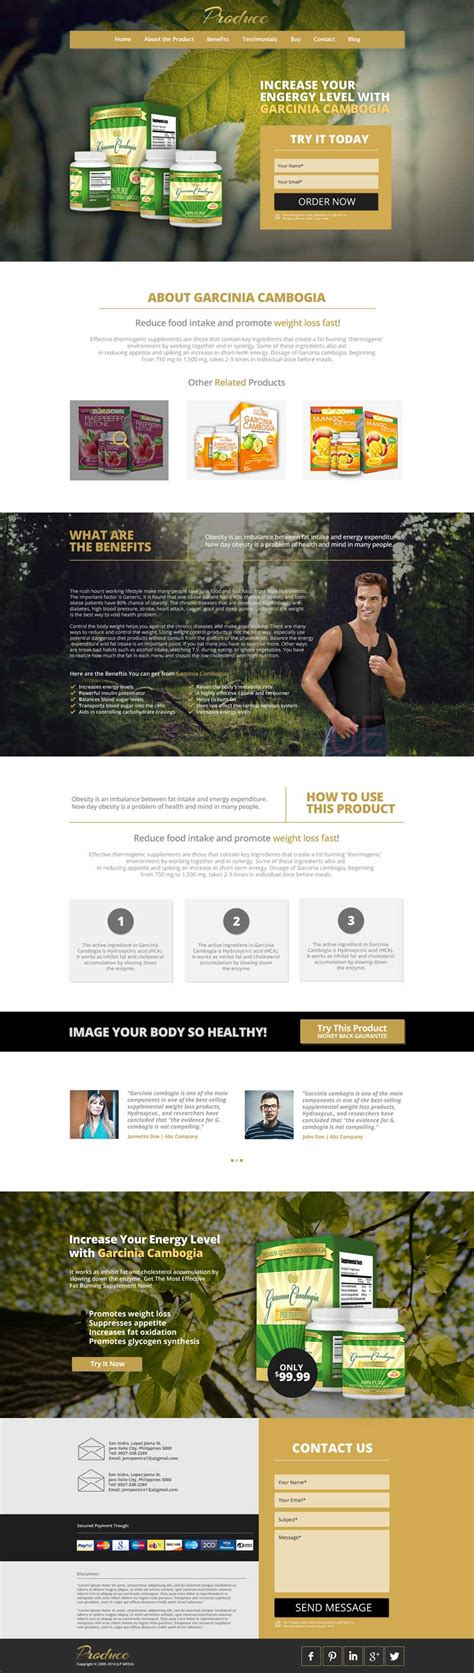 product landing page templates product landing page template vector image 365psd